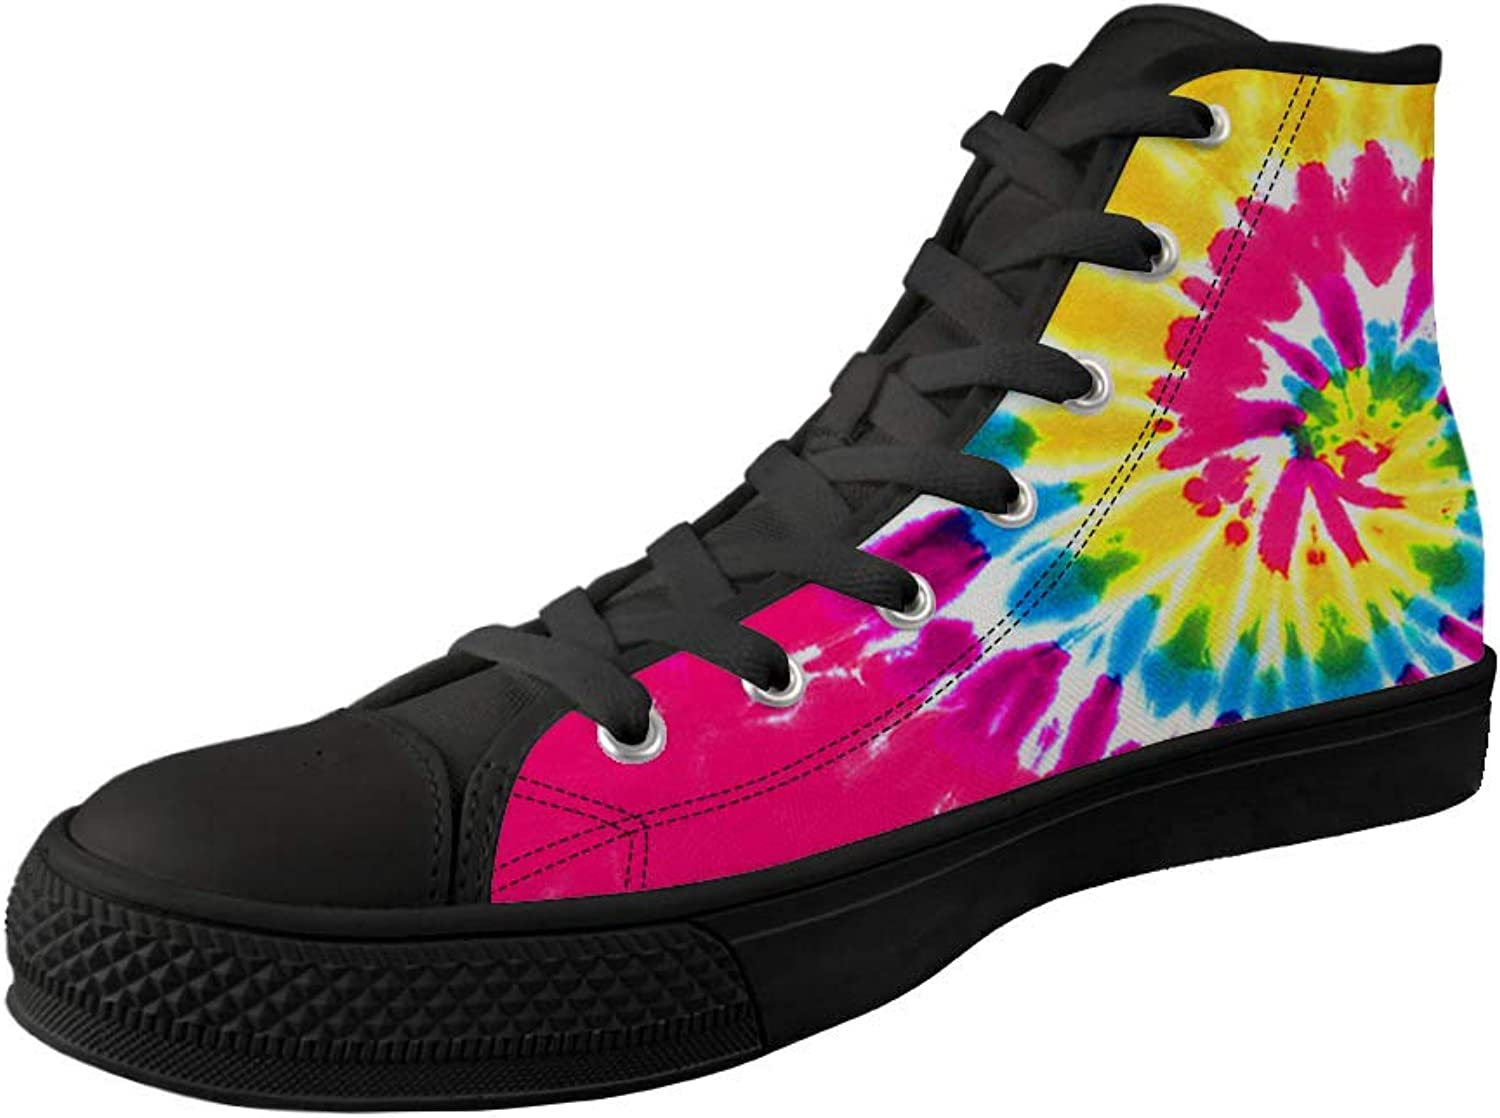 FUSURIRE colorful Graffiti High Top Flat shoes Lace up Fashion shoes Breathable Sneakers for Women Girls